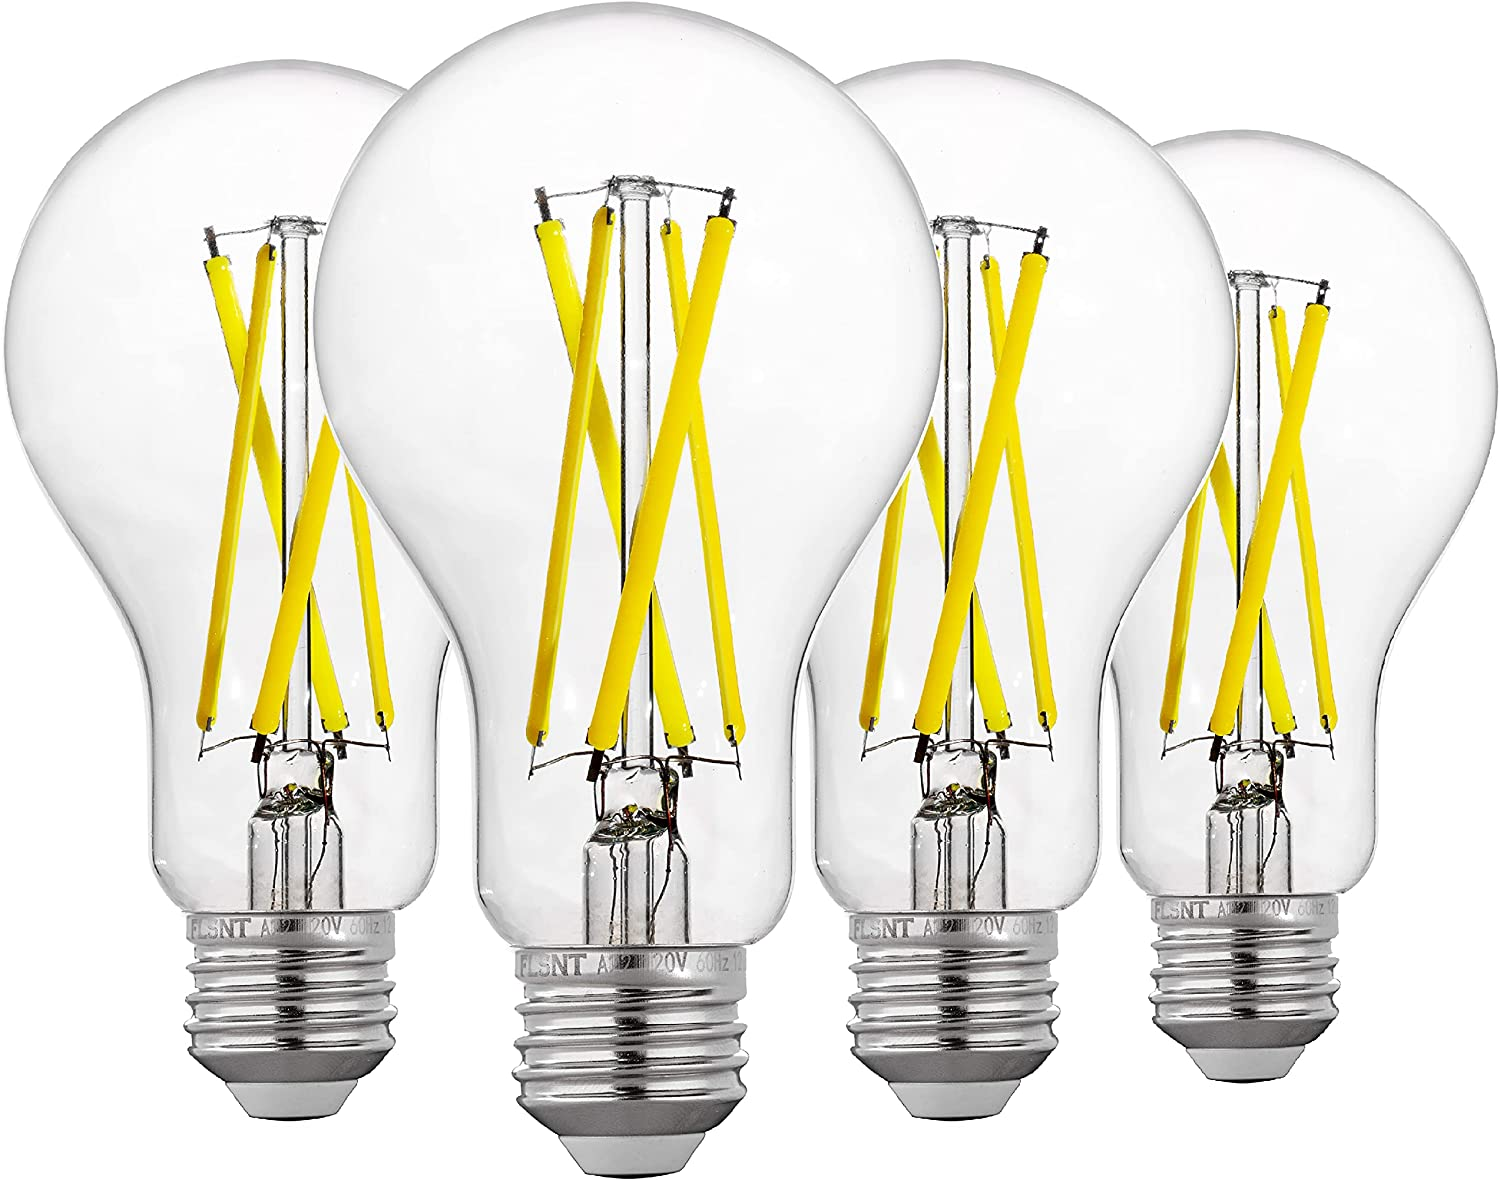 Cheap bargain FLSNT 100W Equivalent Dimmable A21 12W Light Bulbs Ranking TOP13 LED Efficient